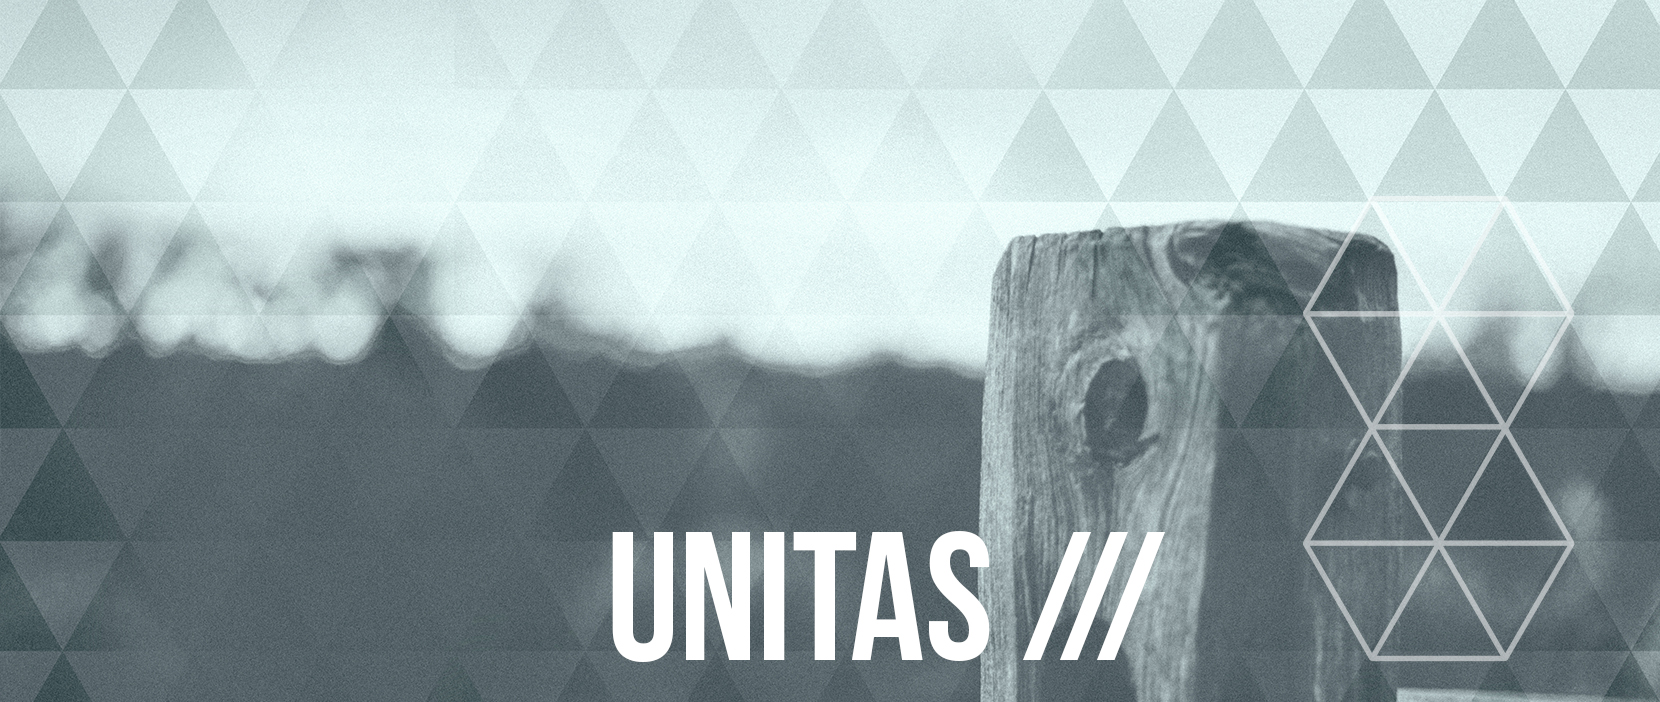 Main image for Unity.